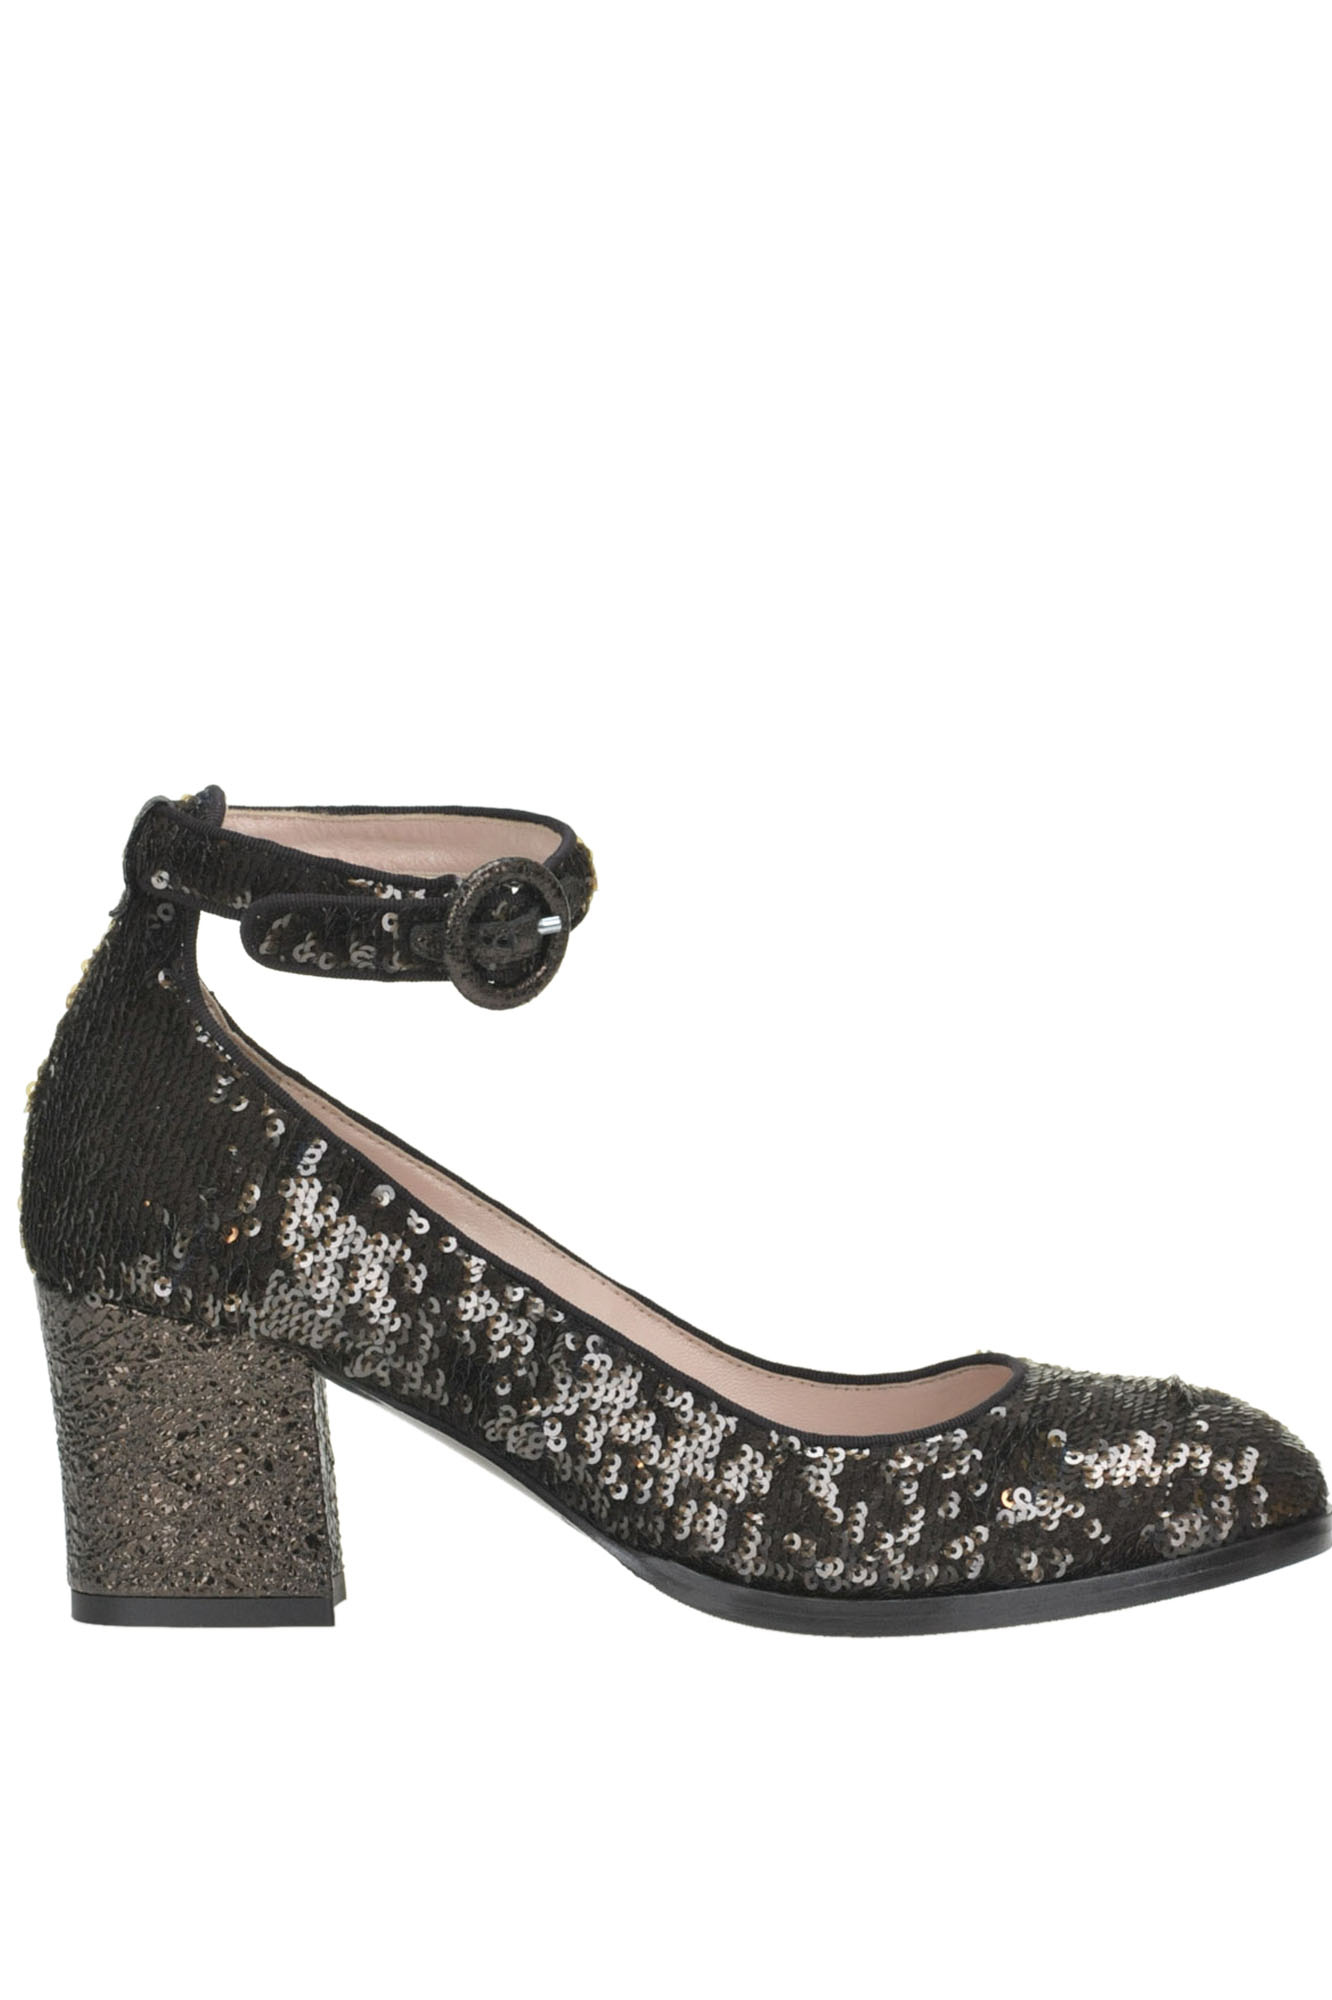 ALBERTO GOZZI Sequined Pumps in Dark Brown